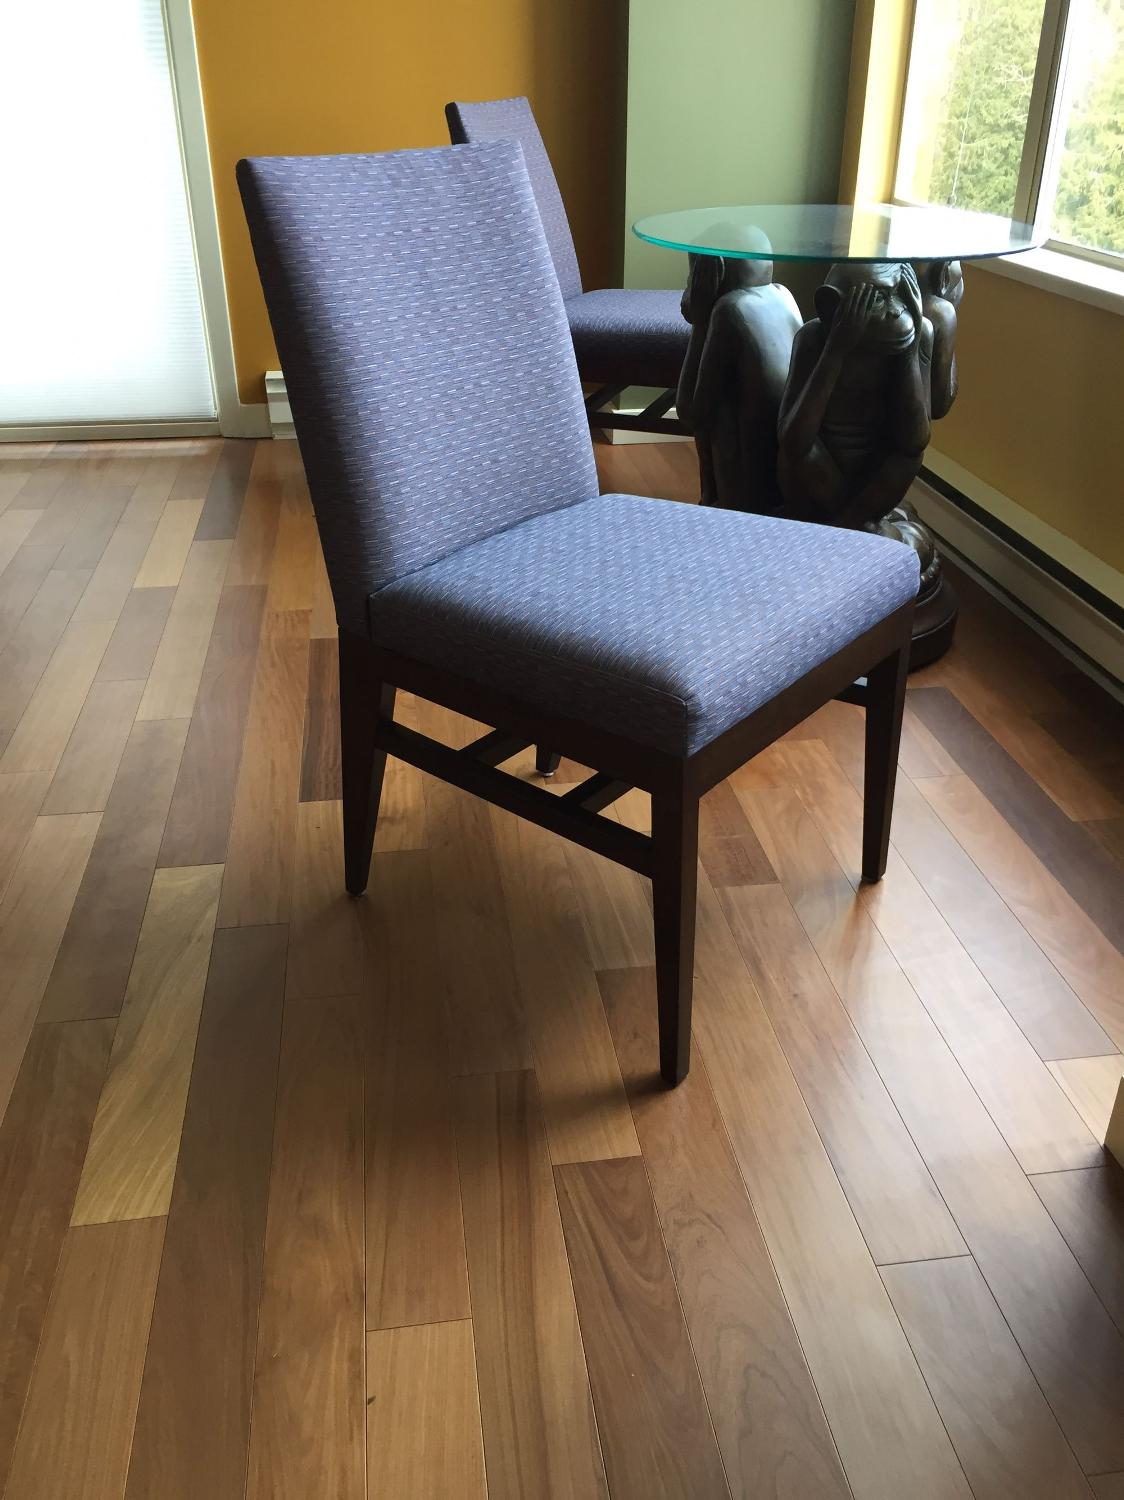 Best dining room chairs for sale in victoria british